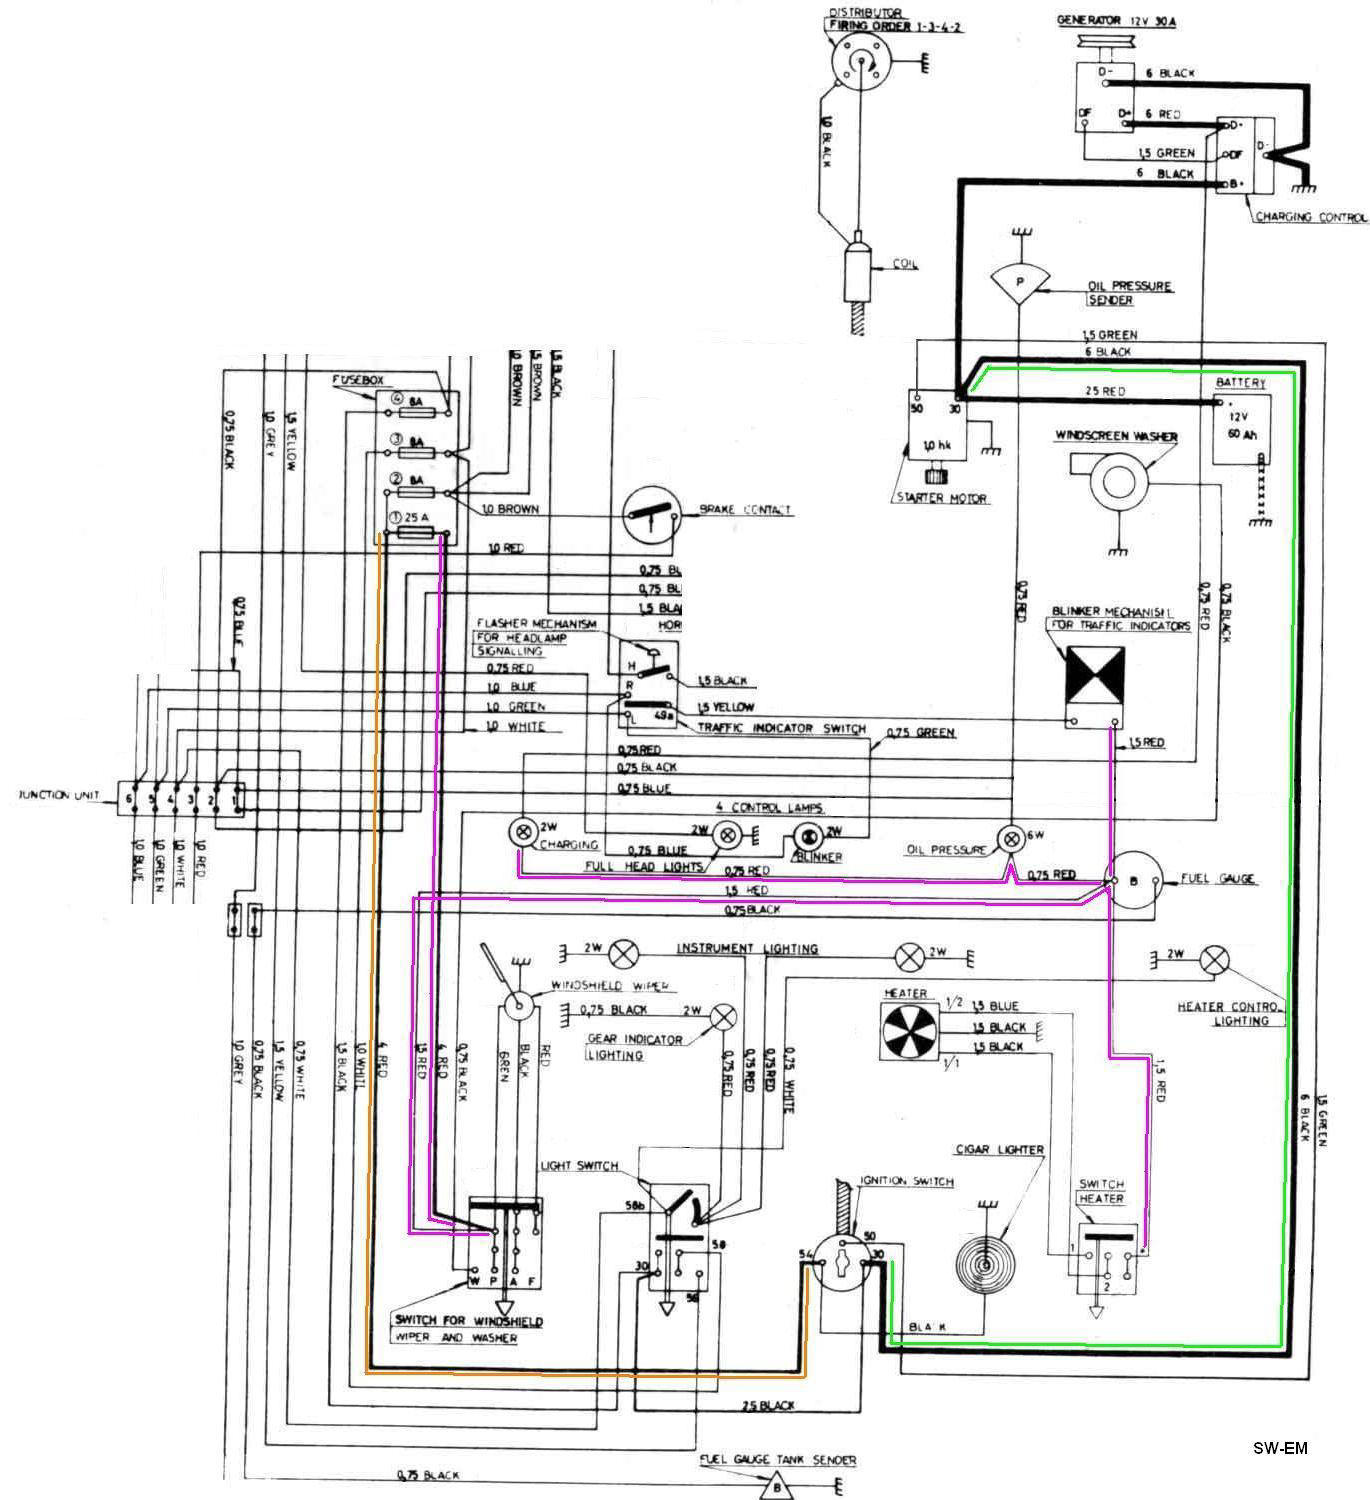 2000 Volvo S40 Ignition Coil Wiring Harness 43 Diagram B12m Getting An Amazon Page 3 Ign Sw Diag 122 Markup